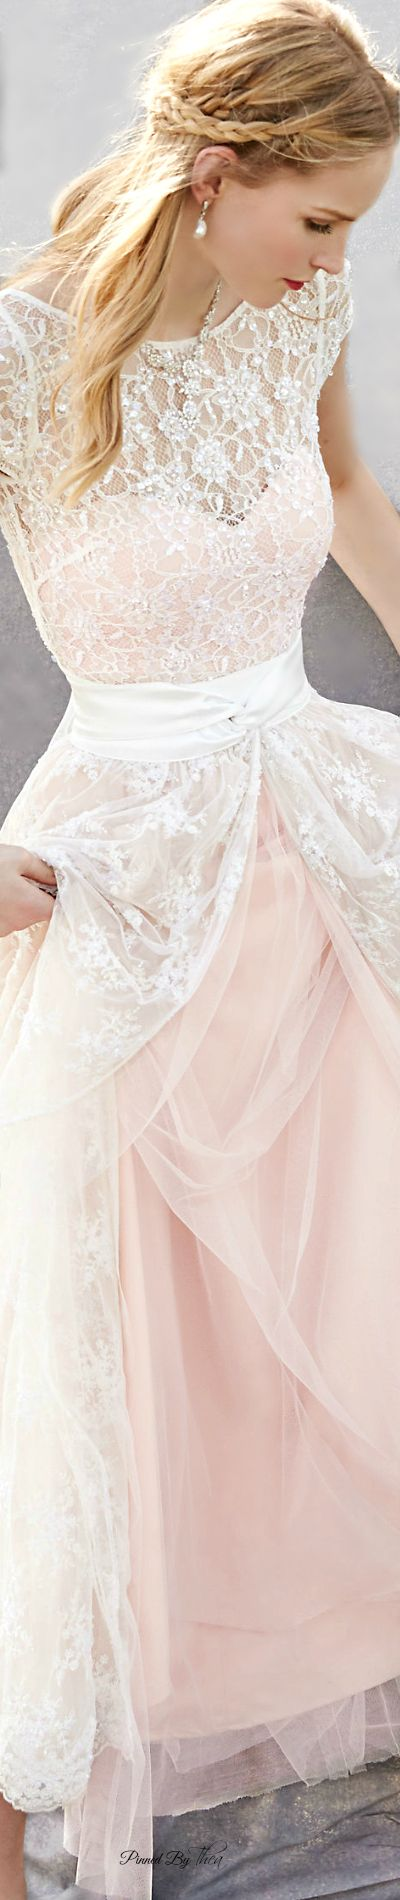 Romantic Dress | You can find this and many other looks at => http://feedproxy.google.com/~r/amazingoutfits/~3/3Lel7Rq6oBI/AmazingOutfits.page